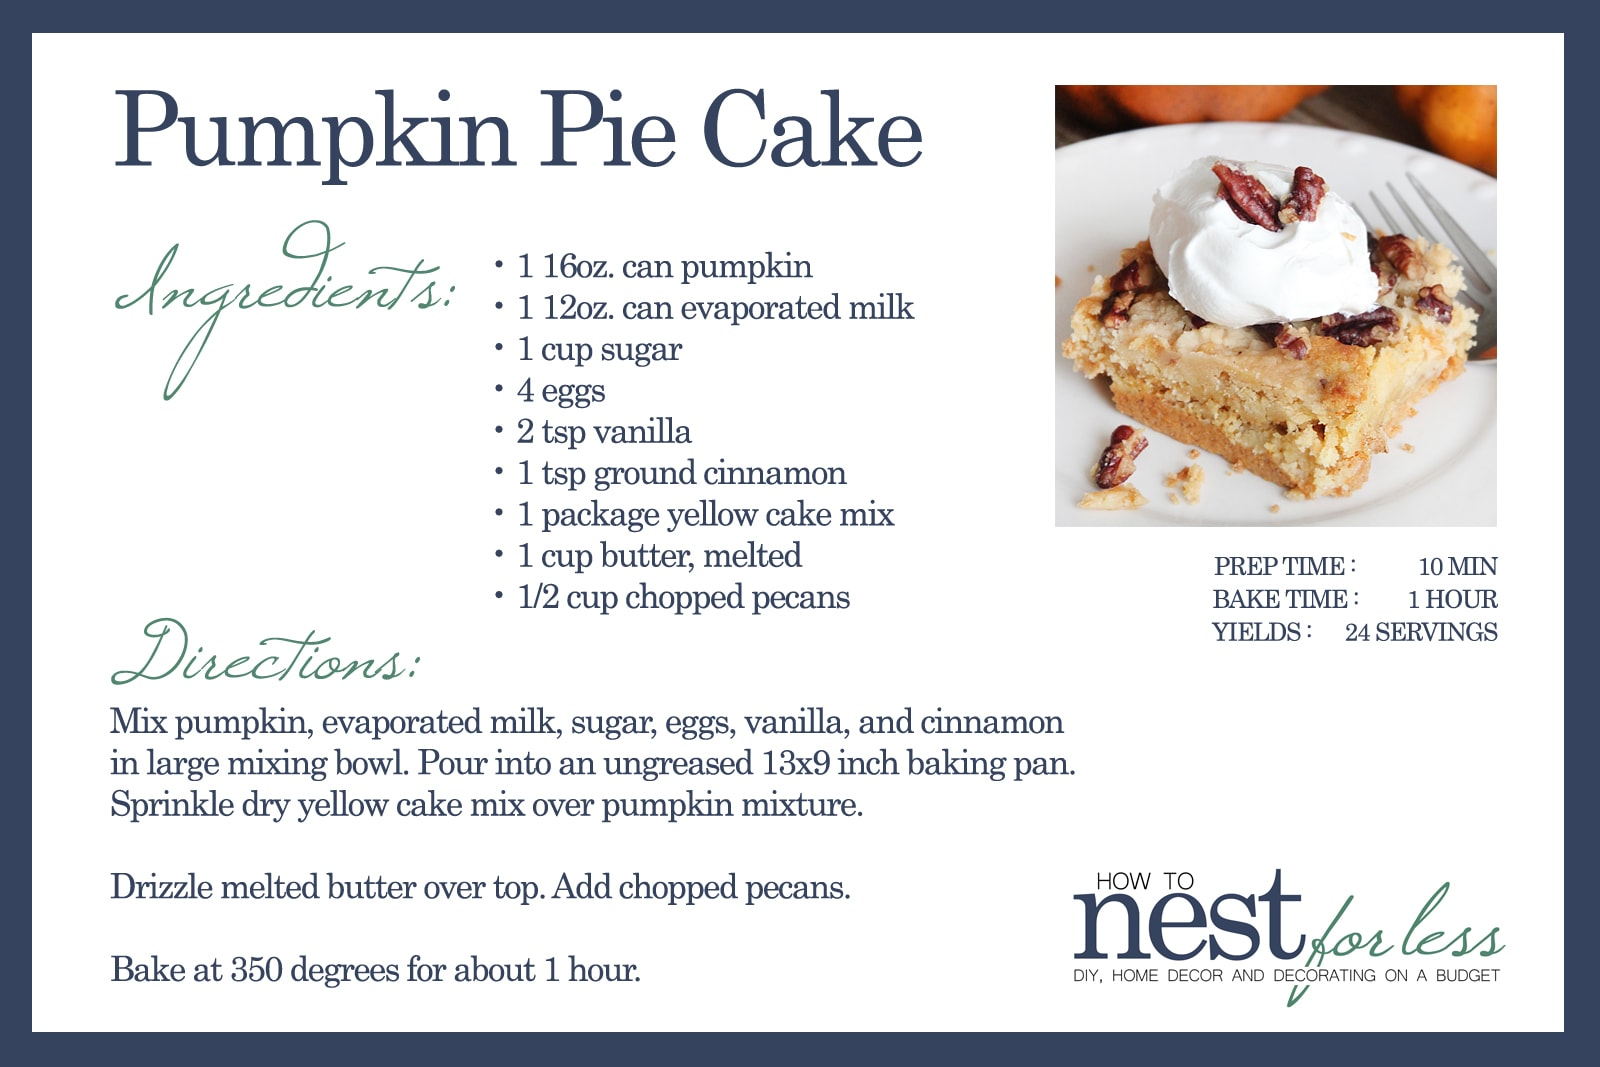 pumpkin-pie-cake-recipe-card